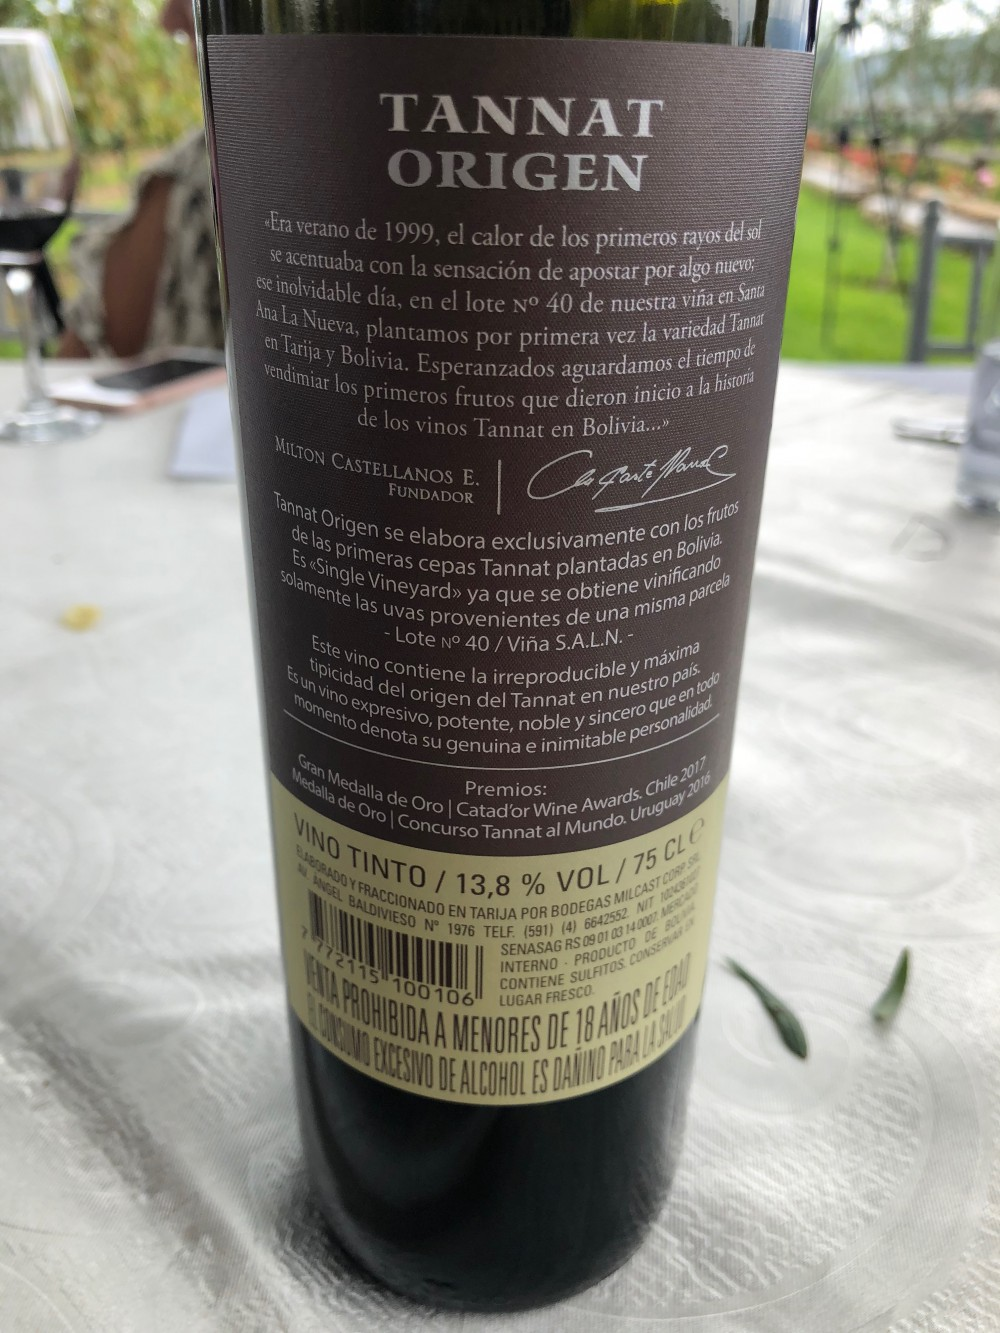 The first Tannat vines planted in Bolivia are celebrated in this Single Vineyard Tannat from Aranjuez, located in Tarija, Bolivia.